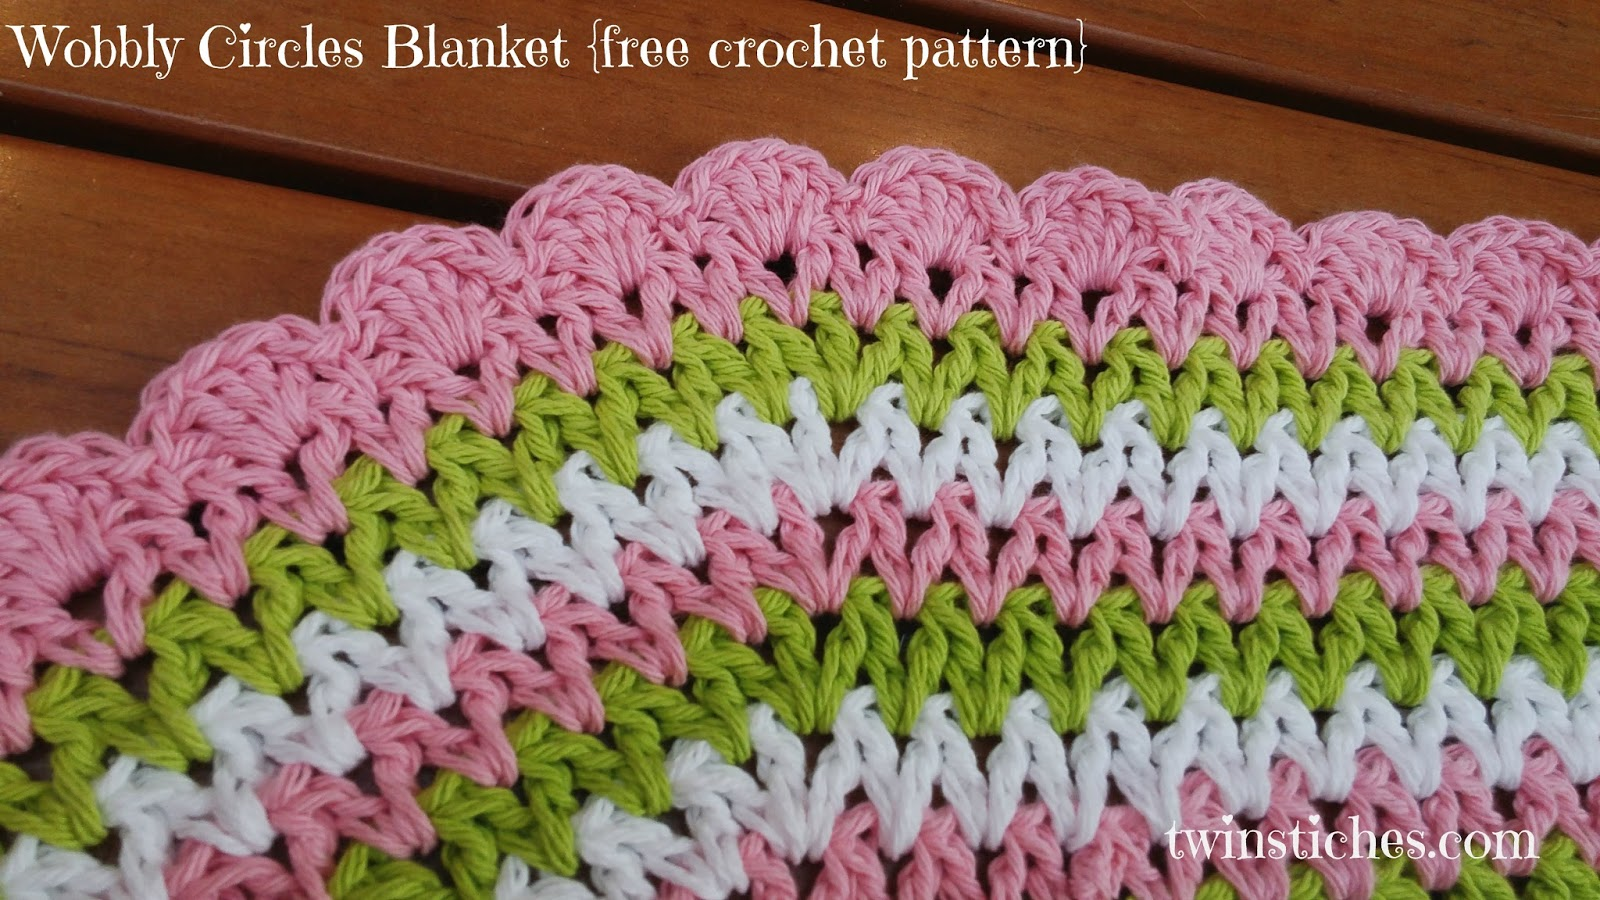 Tw-In Stitches: Wobbly Circles Blanket - Free Pattern | Tw-In Stitches